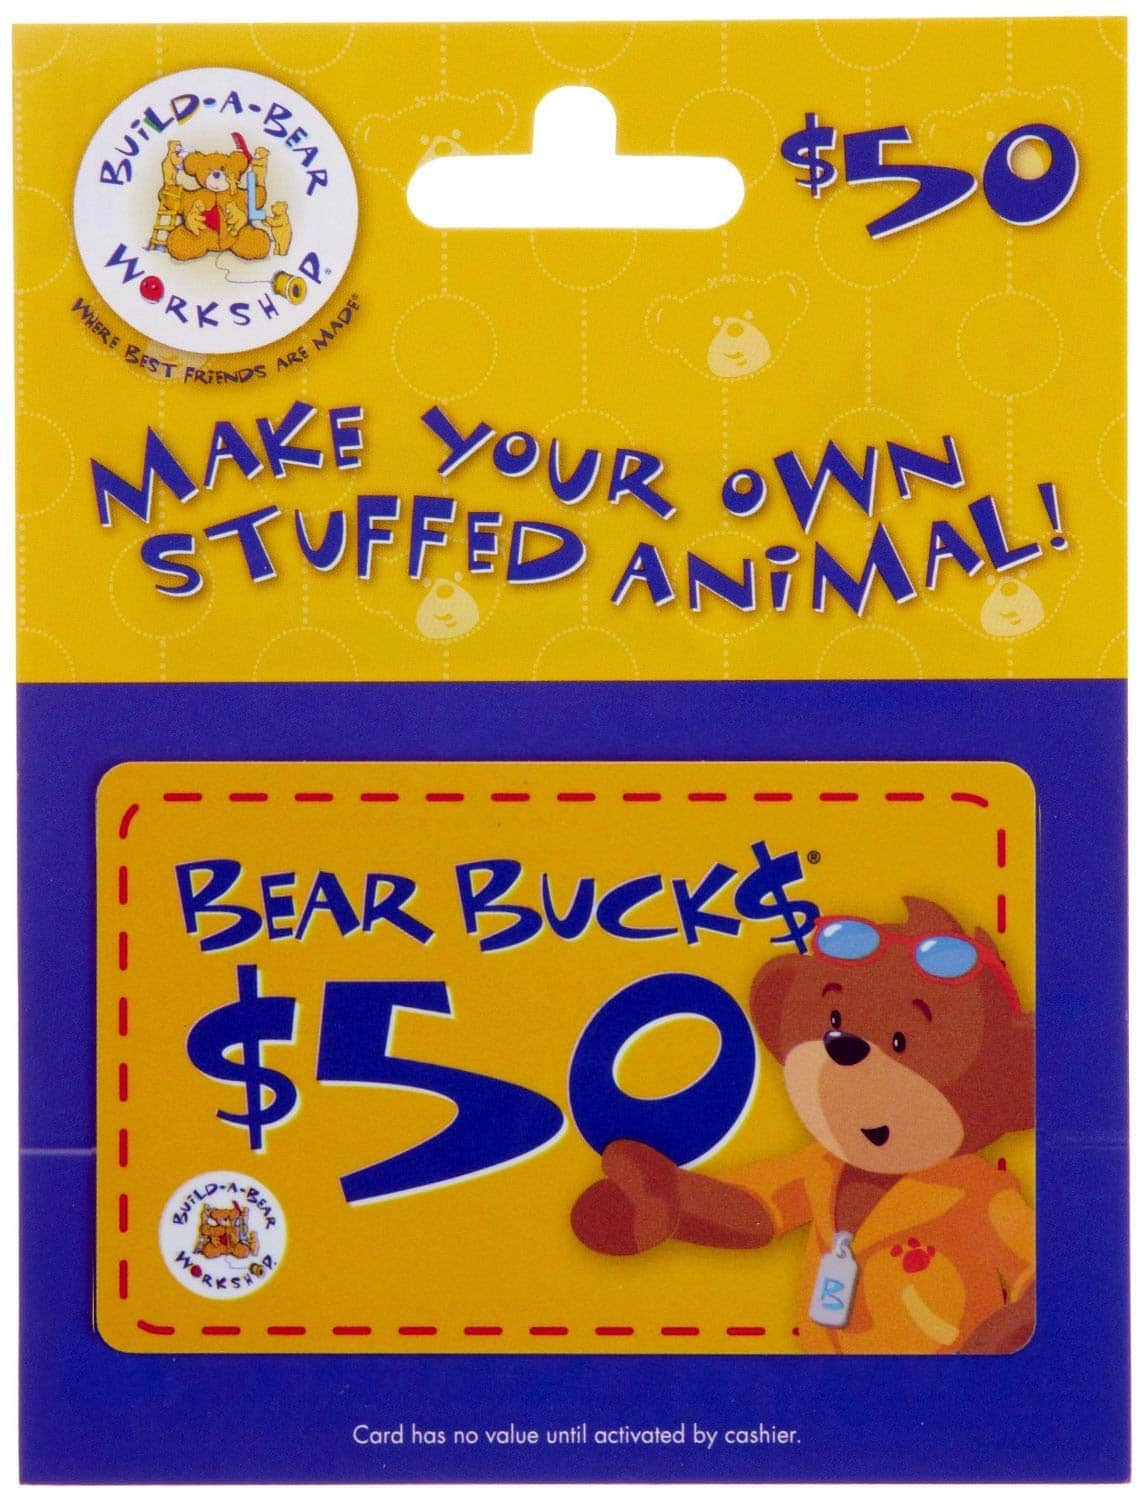 $50 Build-A-Bear Workshop Gift Card for $39.50 + Free Shipping via Amazon *Lightning Deal*